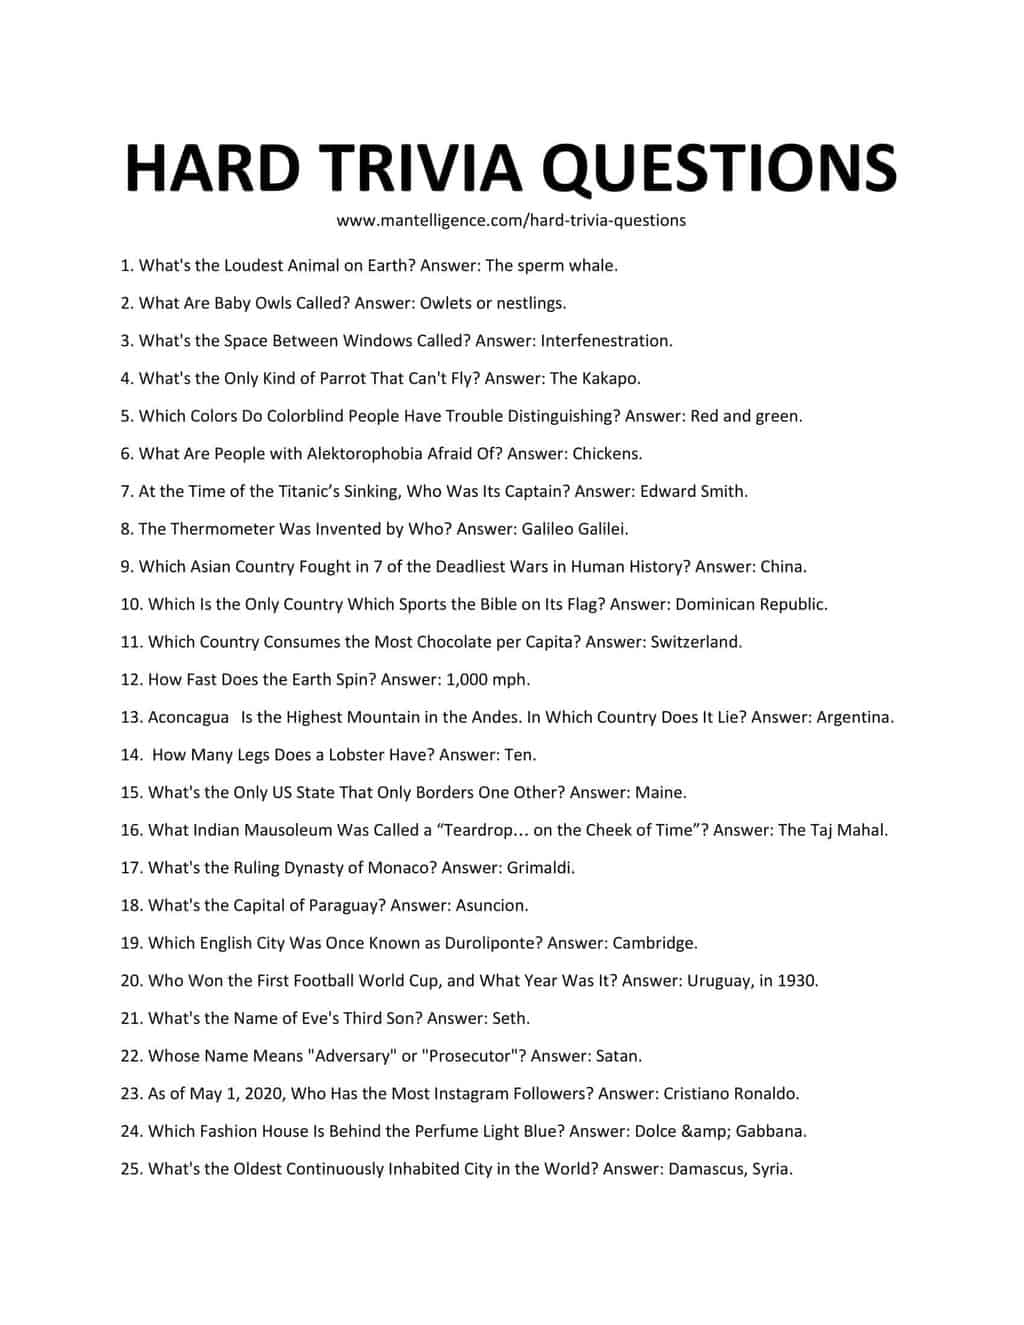 Downloadable List of Hard Trivia Questions